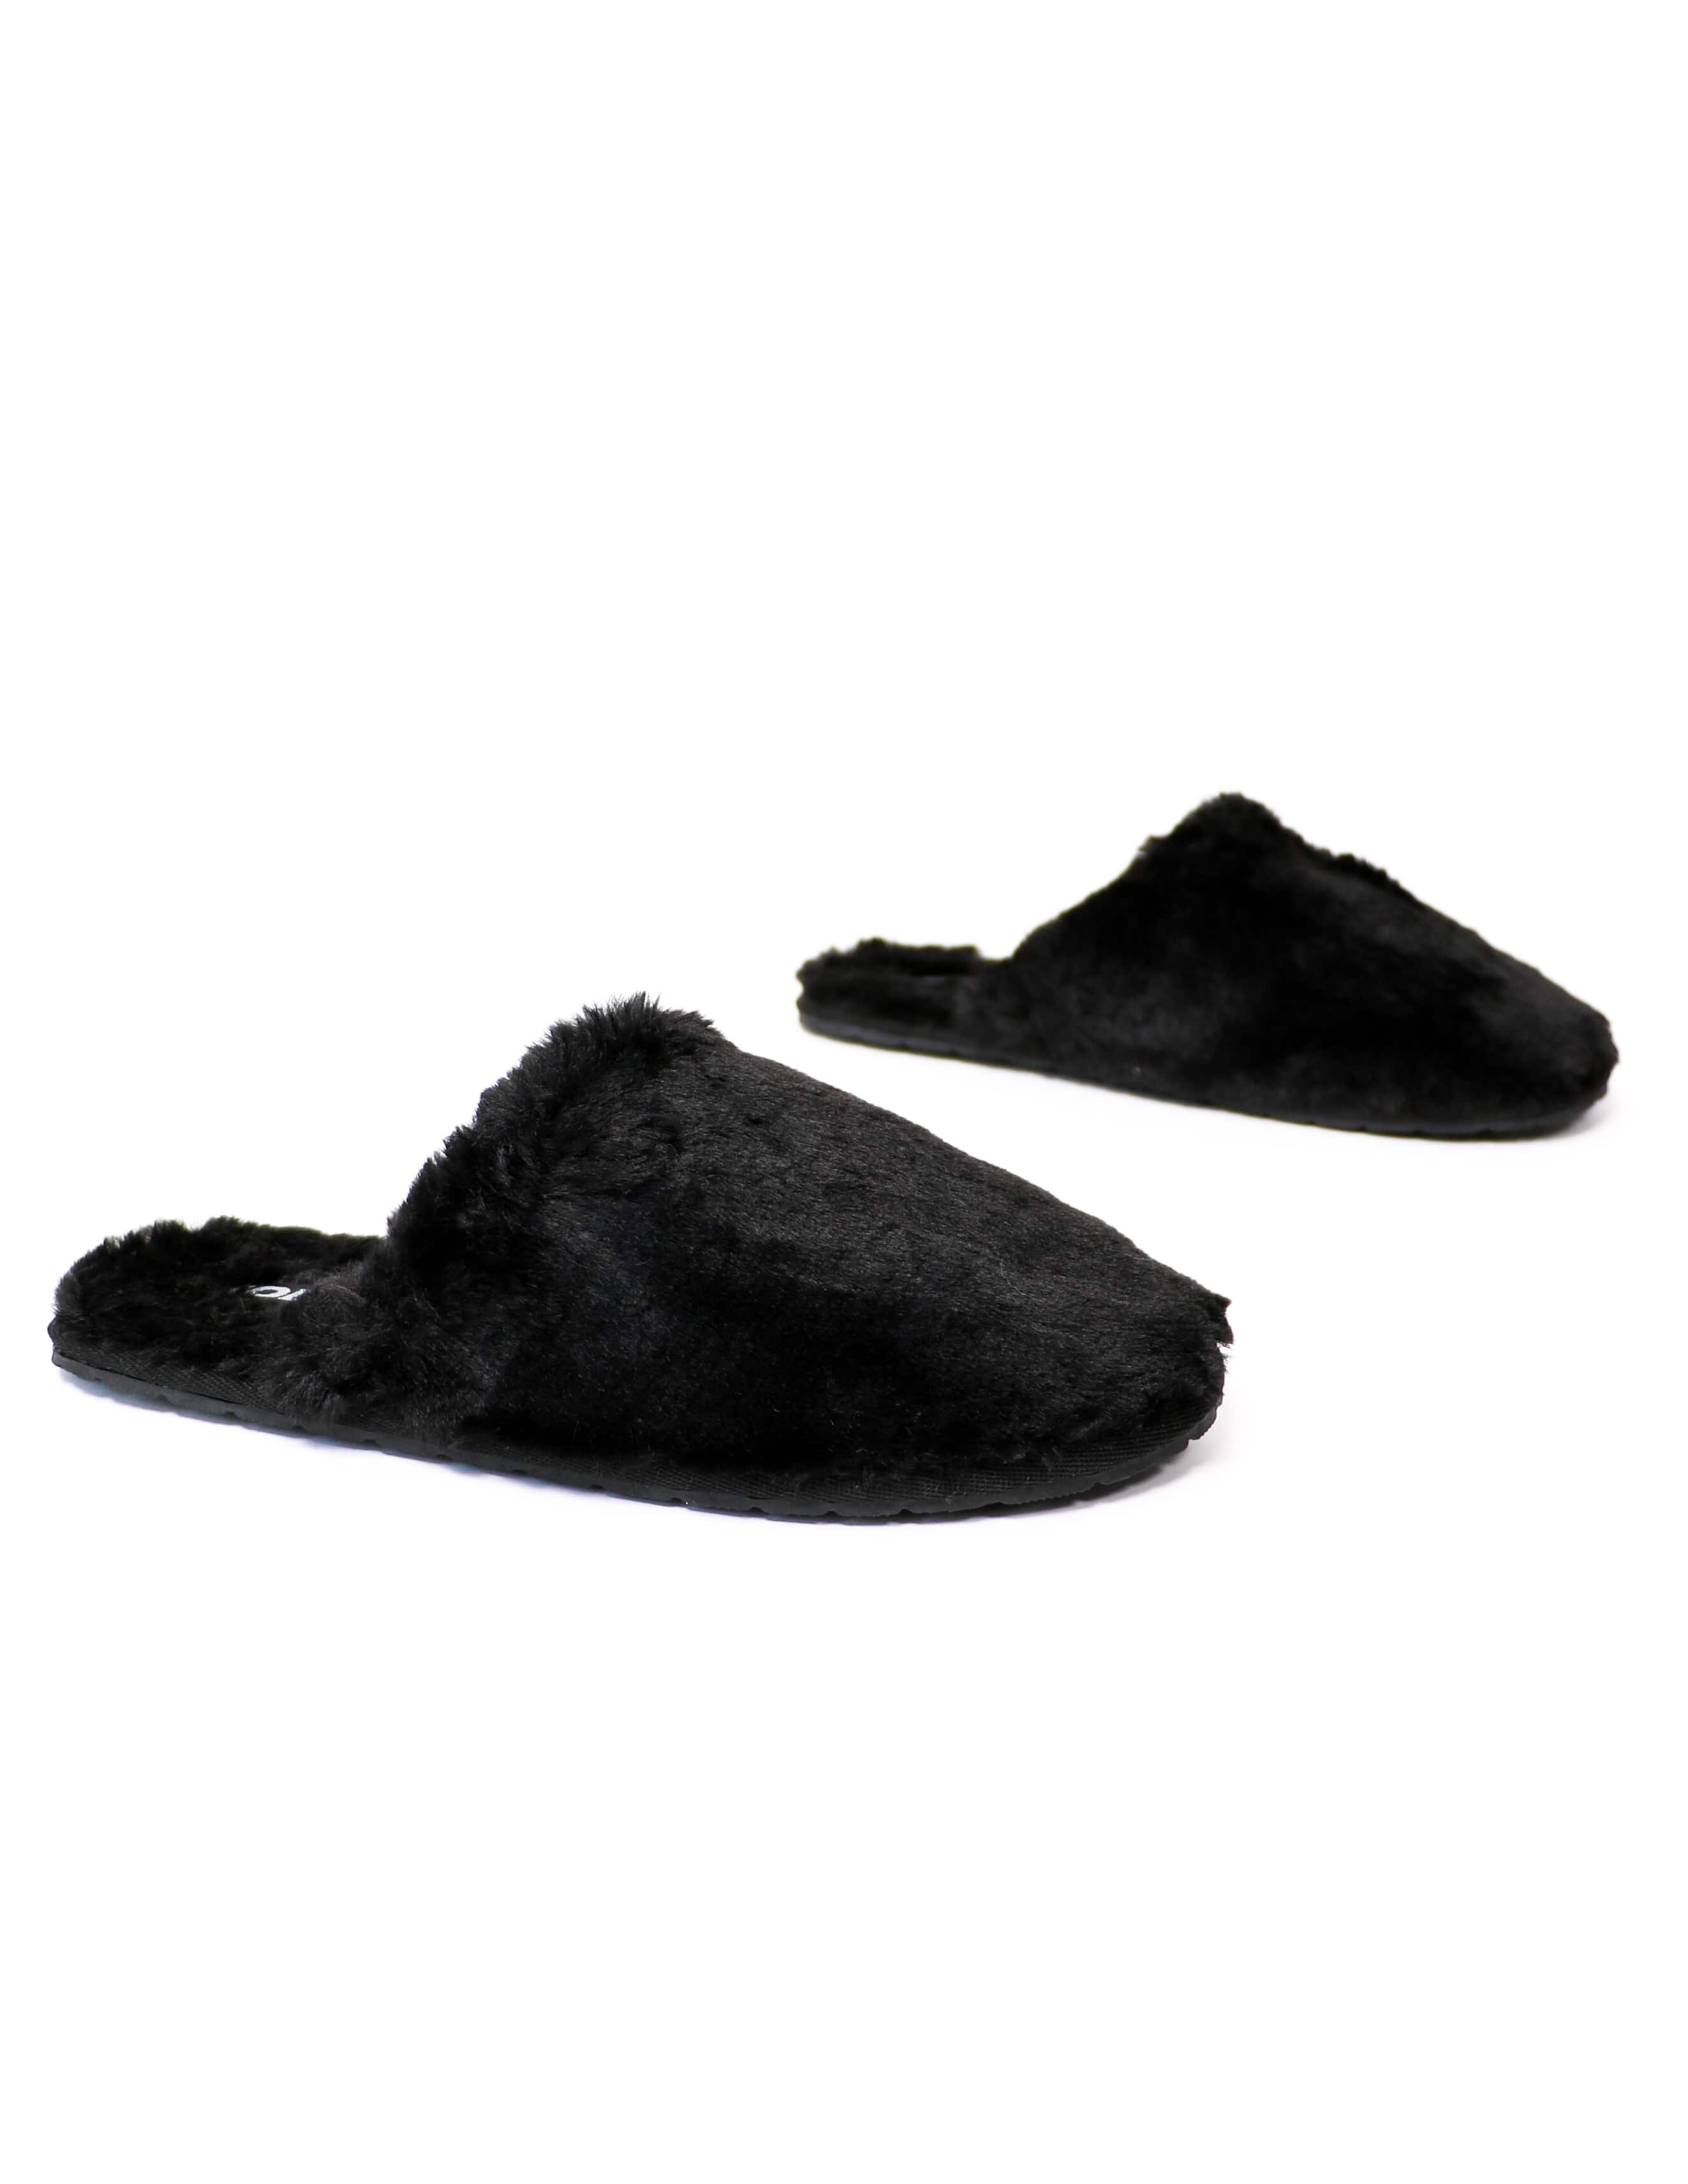 Black faux fur fluffy slippers on white background